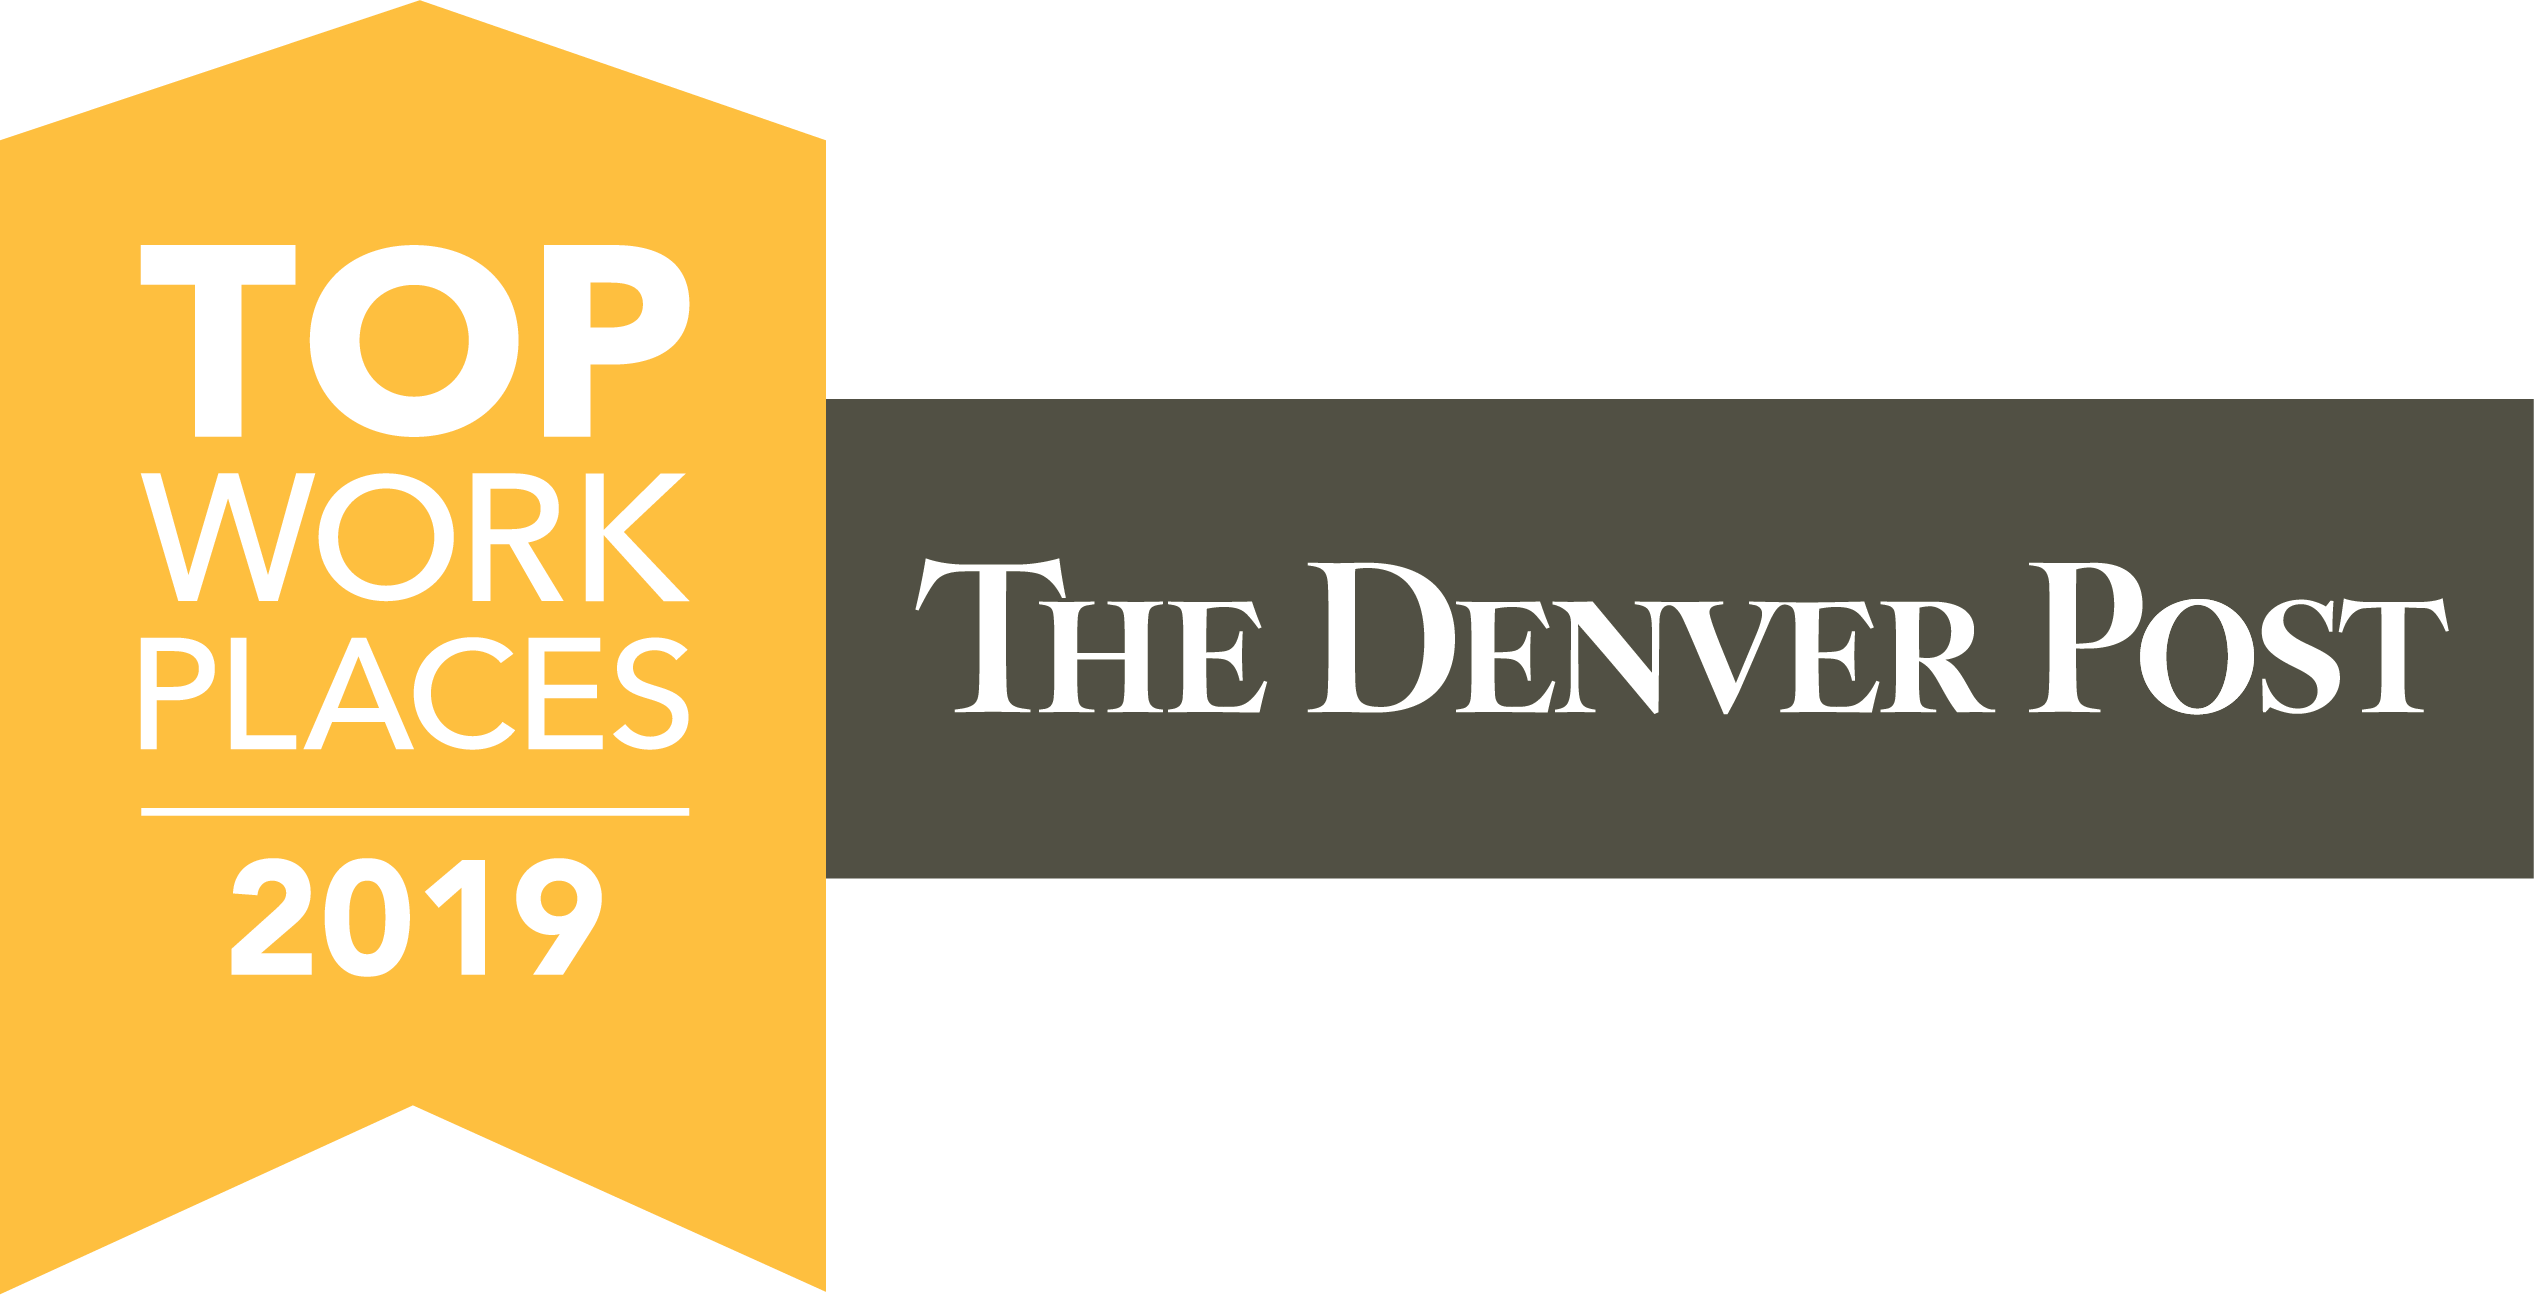 Denver Post Top Work Places 2019